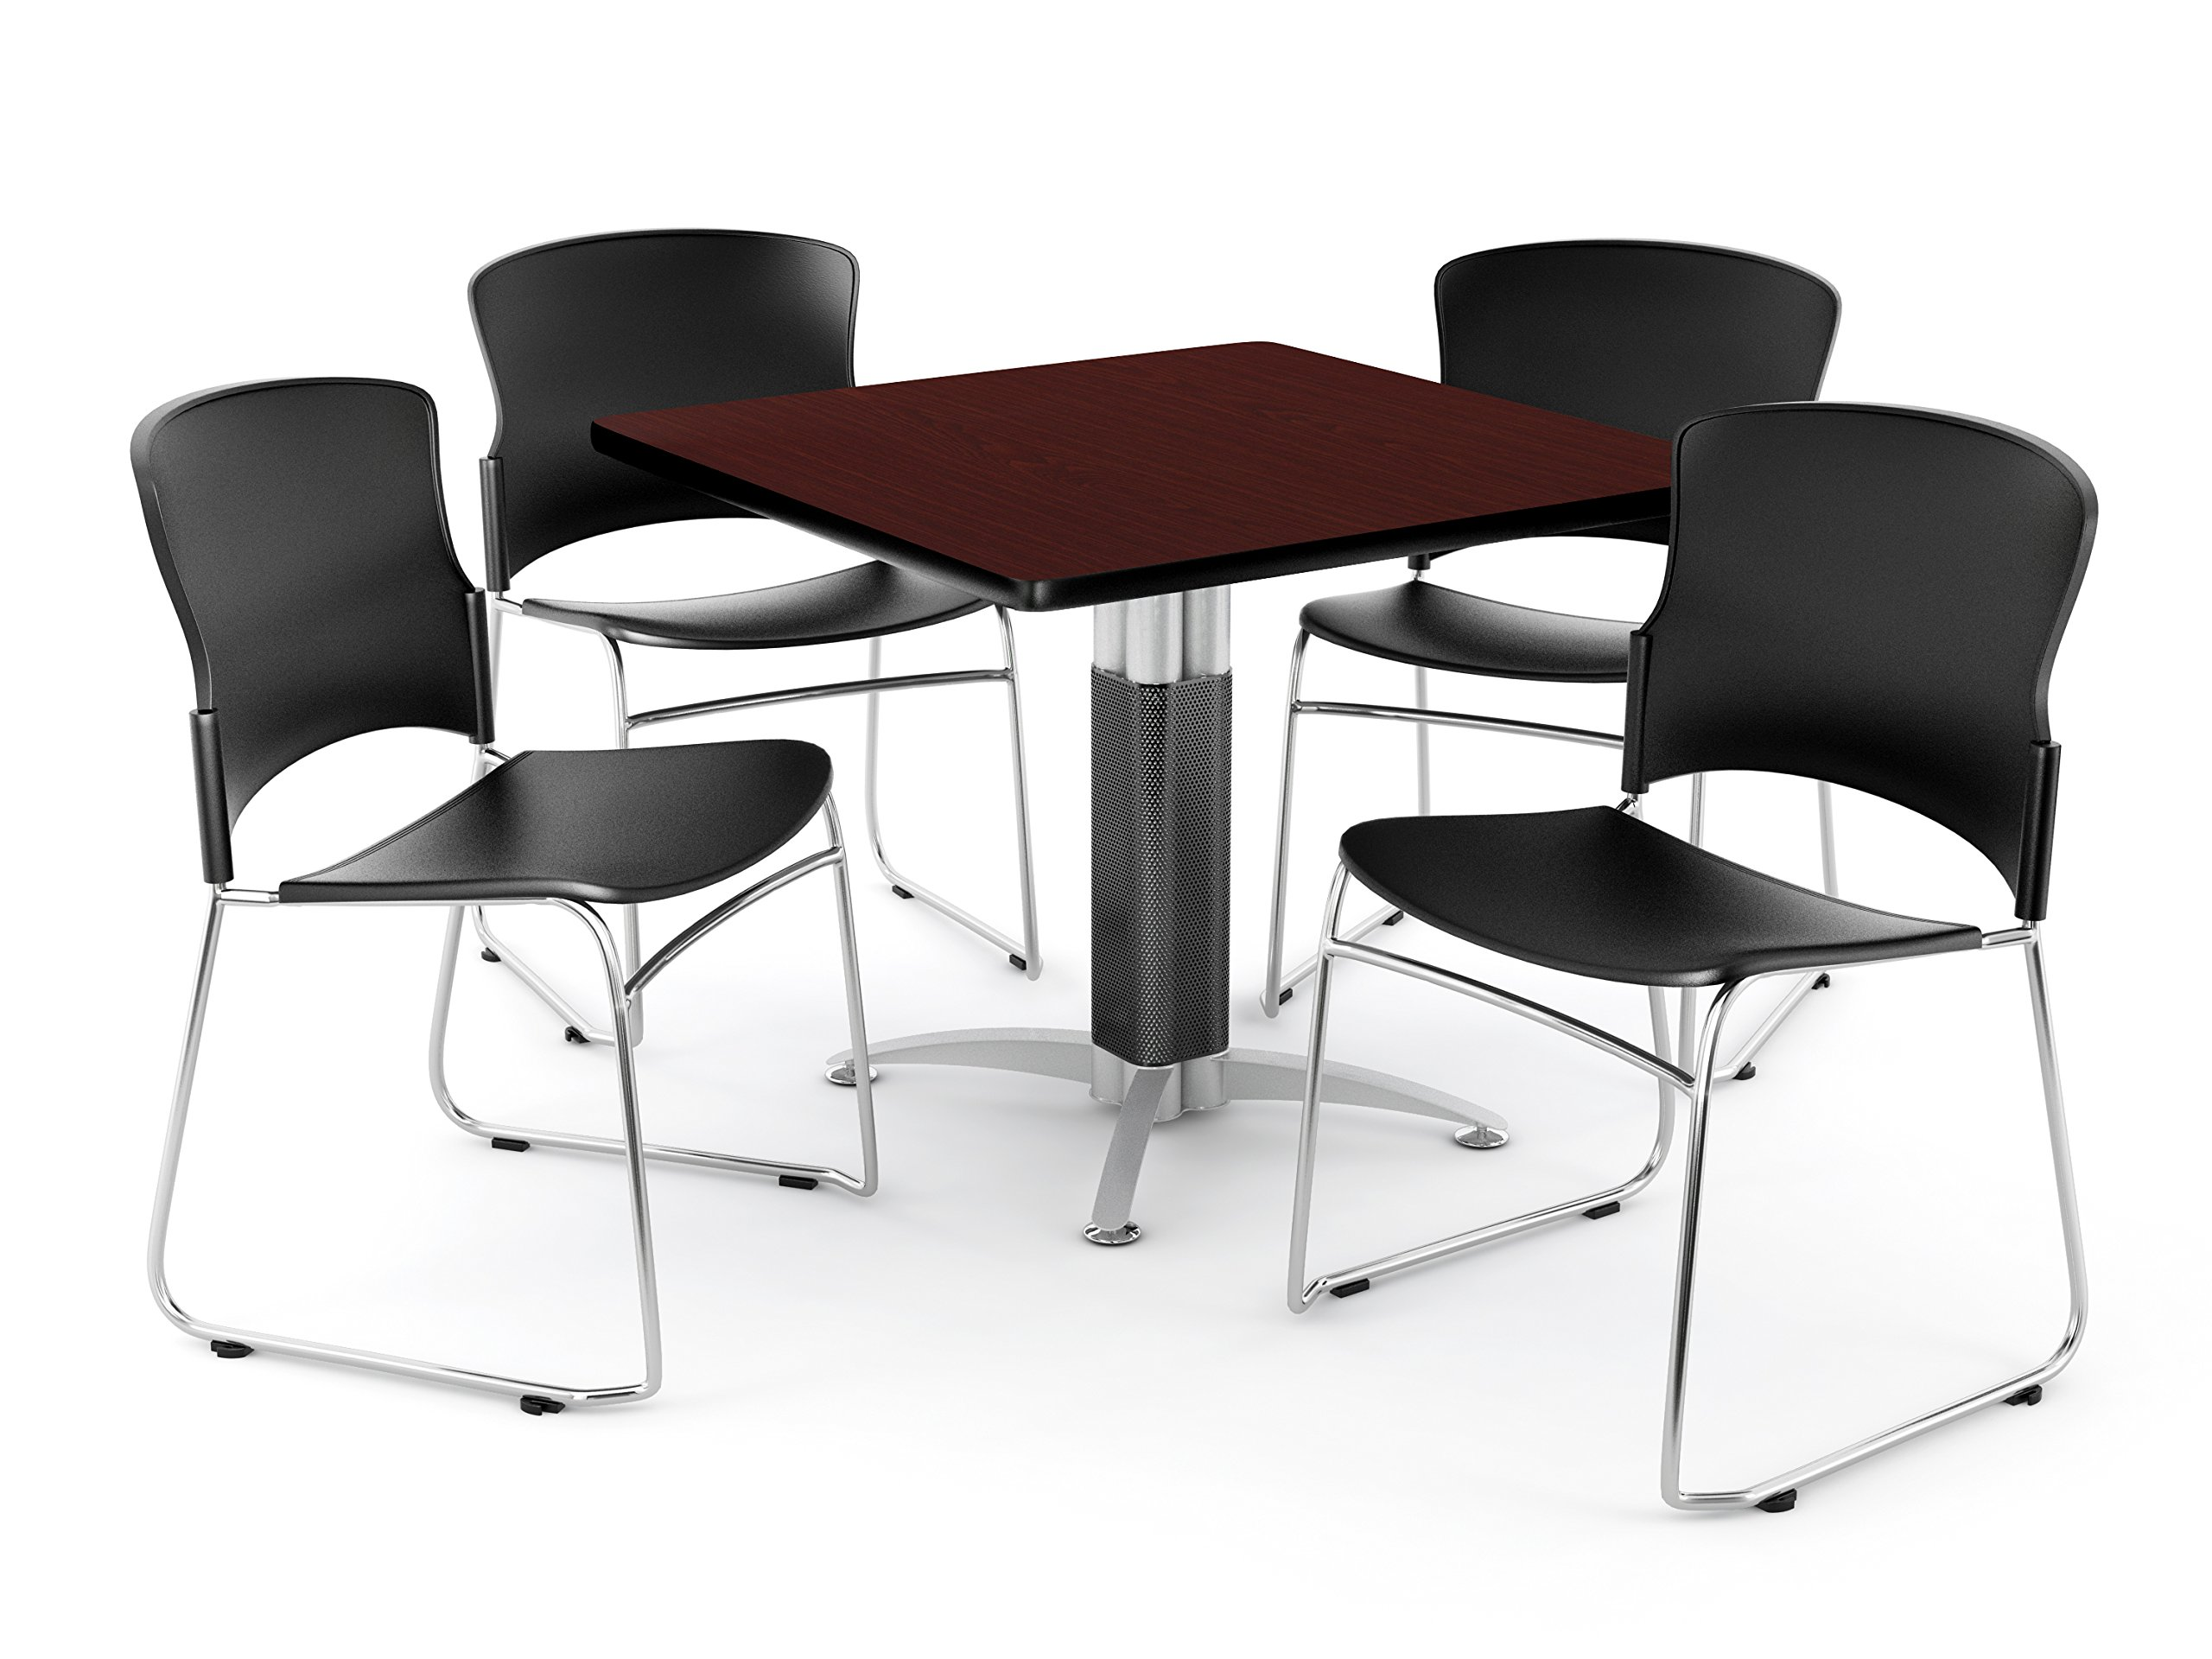 OFM PKG-BRK-028-0010 Breakroom Package, Mahogany Table/Black Chair